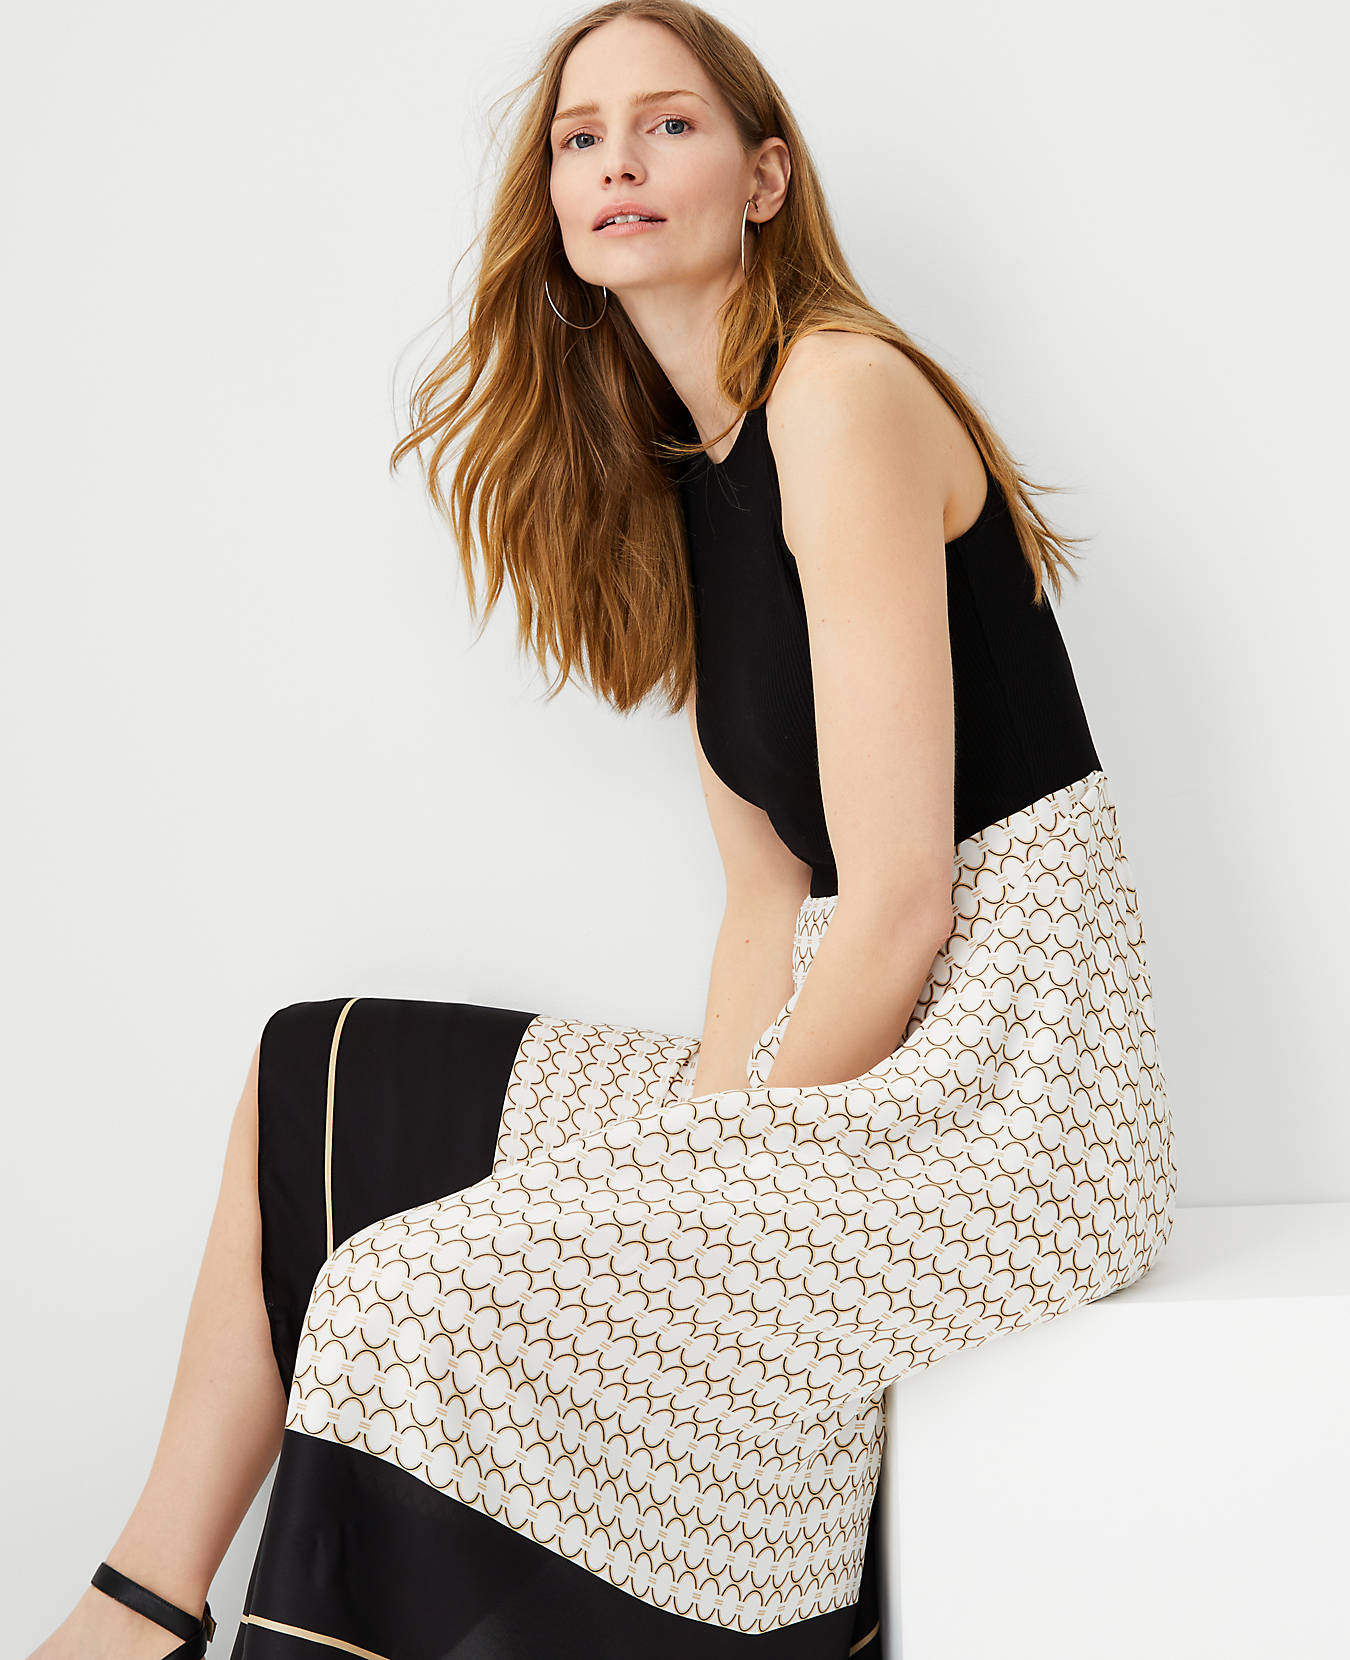 ANN TAYLOR HUGE CLEARANCE SALE UP TO 80% OFF! PRICES AS LOW AS $17!